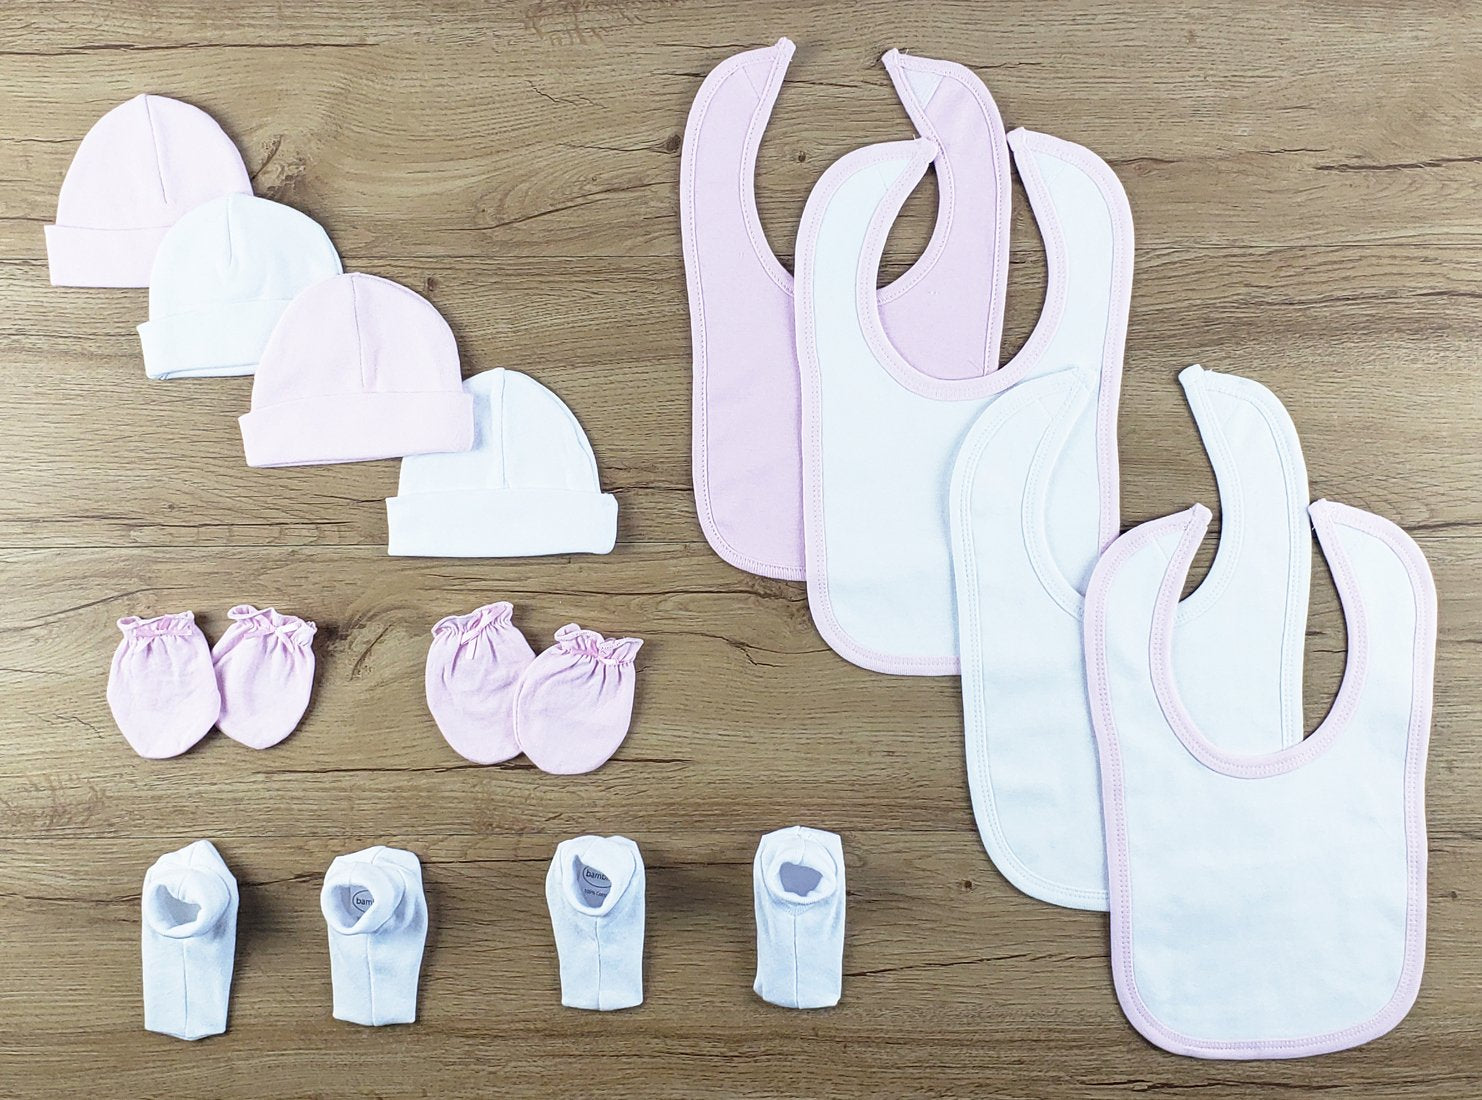 Bambini 12 PC set of Bibs, Caps, Booties - Baby World Inc